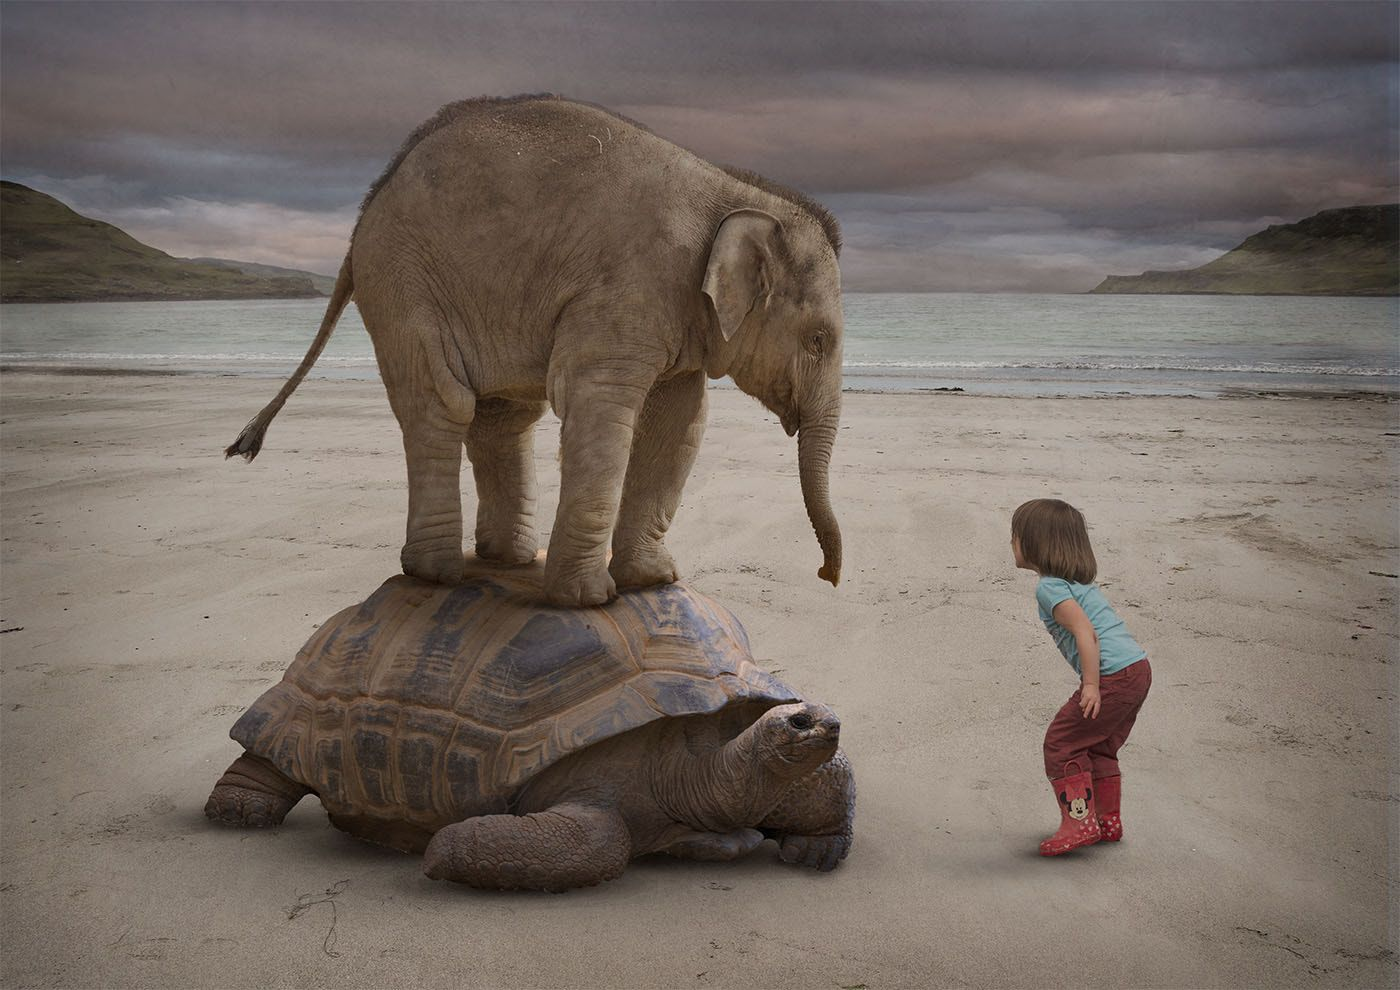 Piggy Back Elephant Tortoise And Child With Images Cute